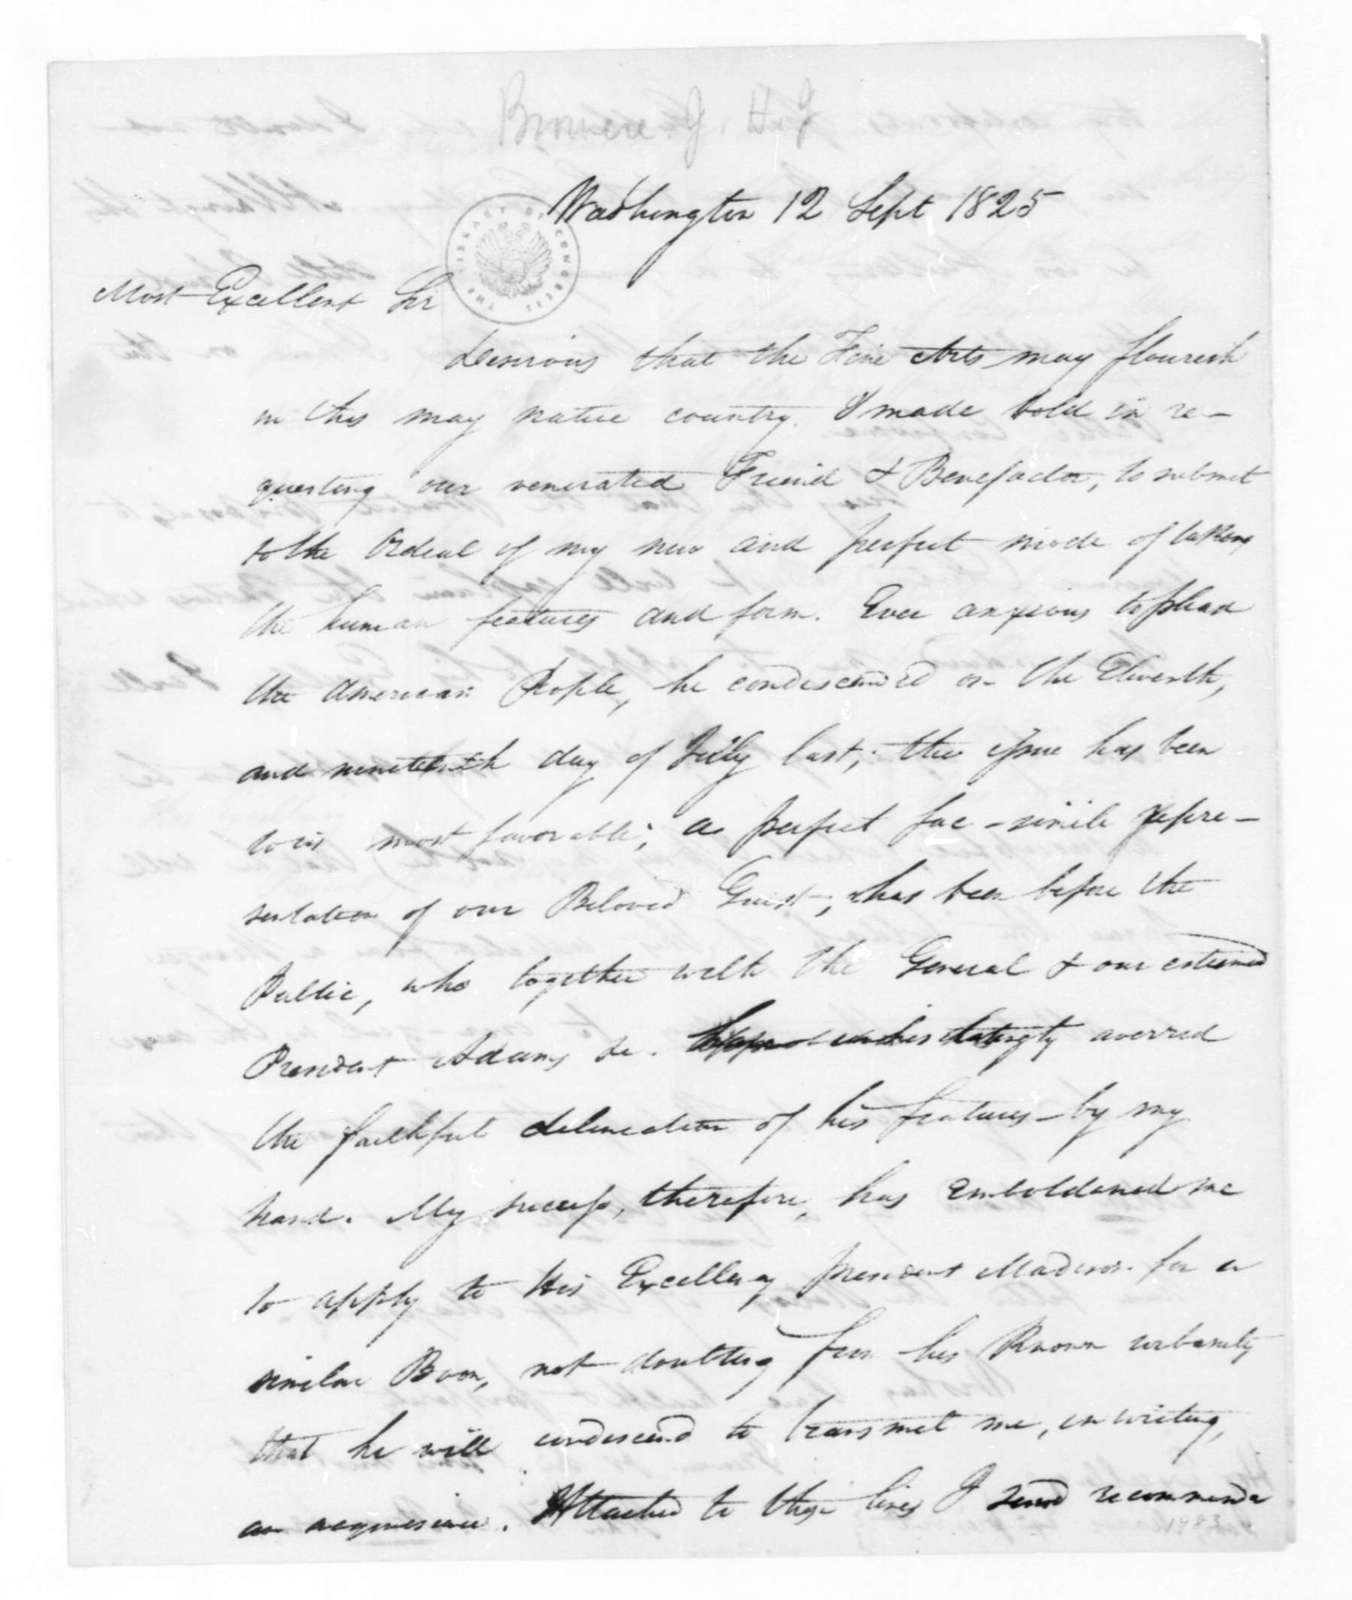 John H. J. Browere to James Monroe, September 12, 1825. Docketed to James Madison.